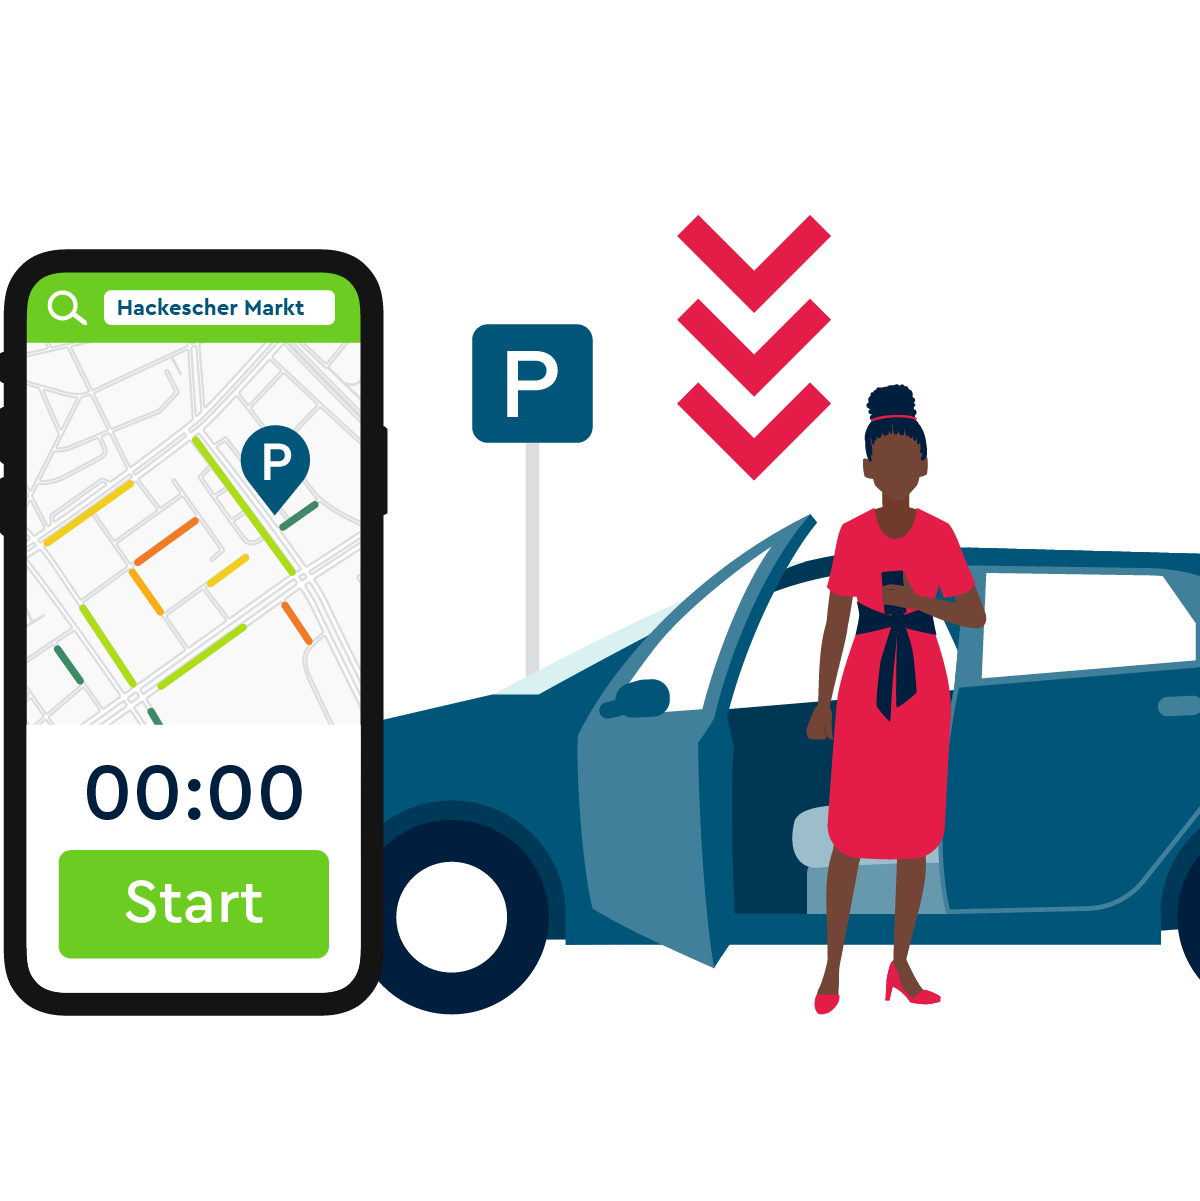 Find, park and pay your parking spot with PARK NOW